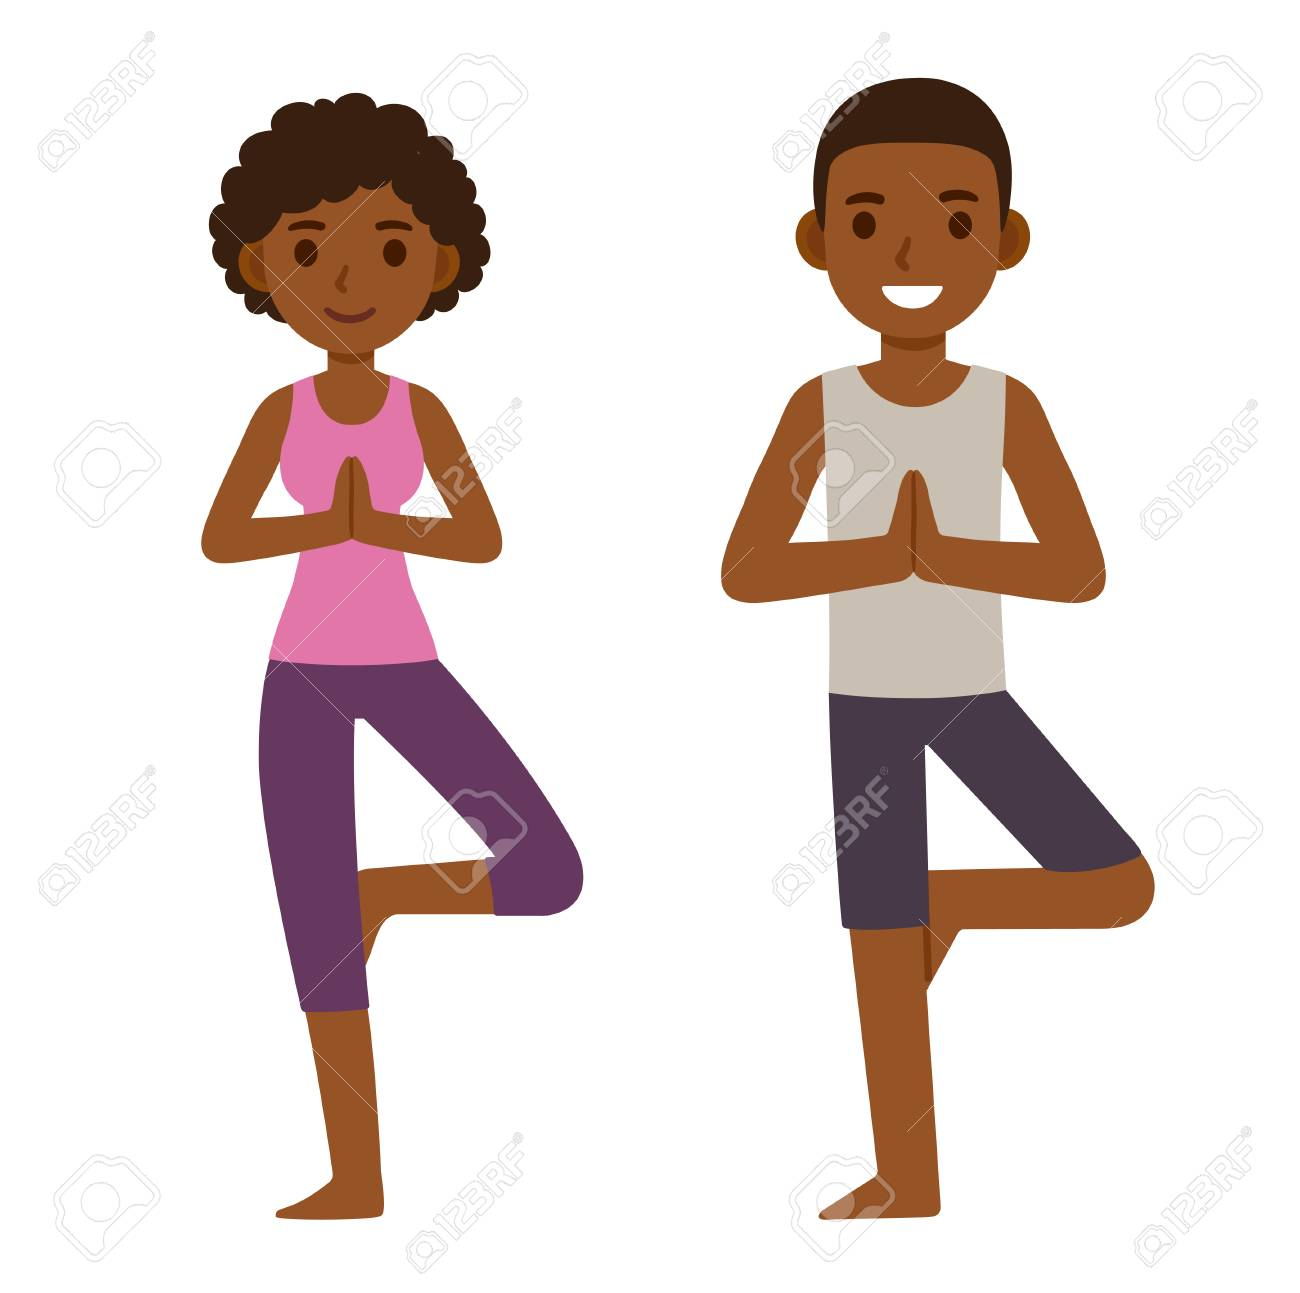 Cute Cartoon Black Couple Doing Yoga Young Man And Woman In Royalty Free Cliparts Vectors And Stock Illustration Image 126321413